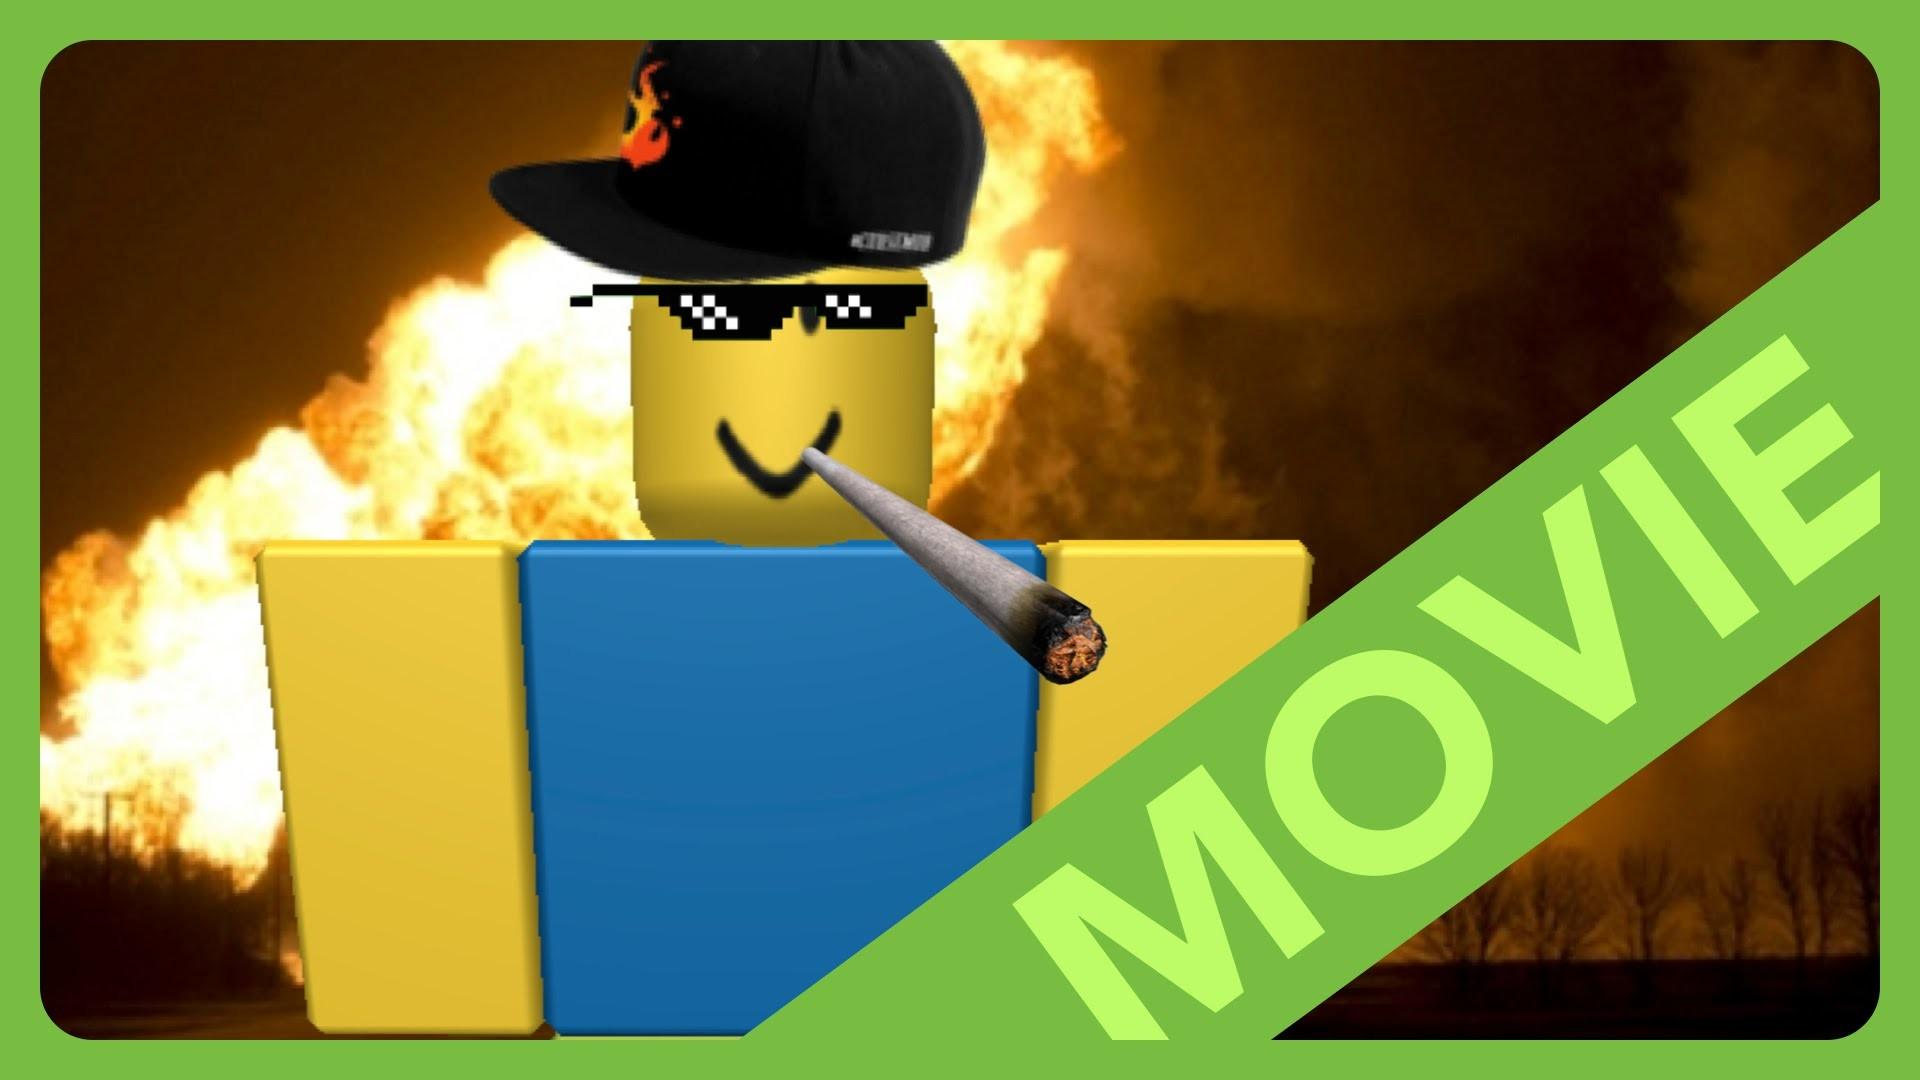 Roblox Noob Wallpapers Wallpaper Cave Free Robux Codes Promo